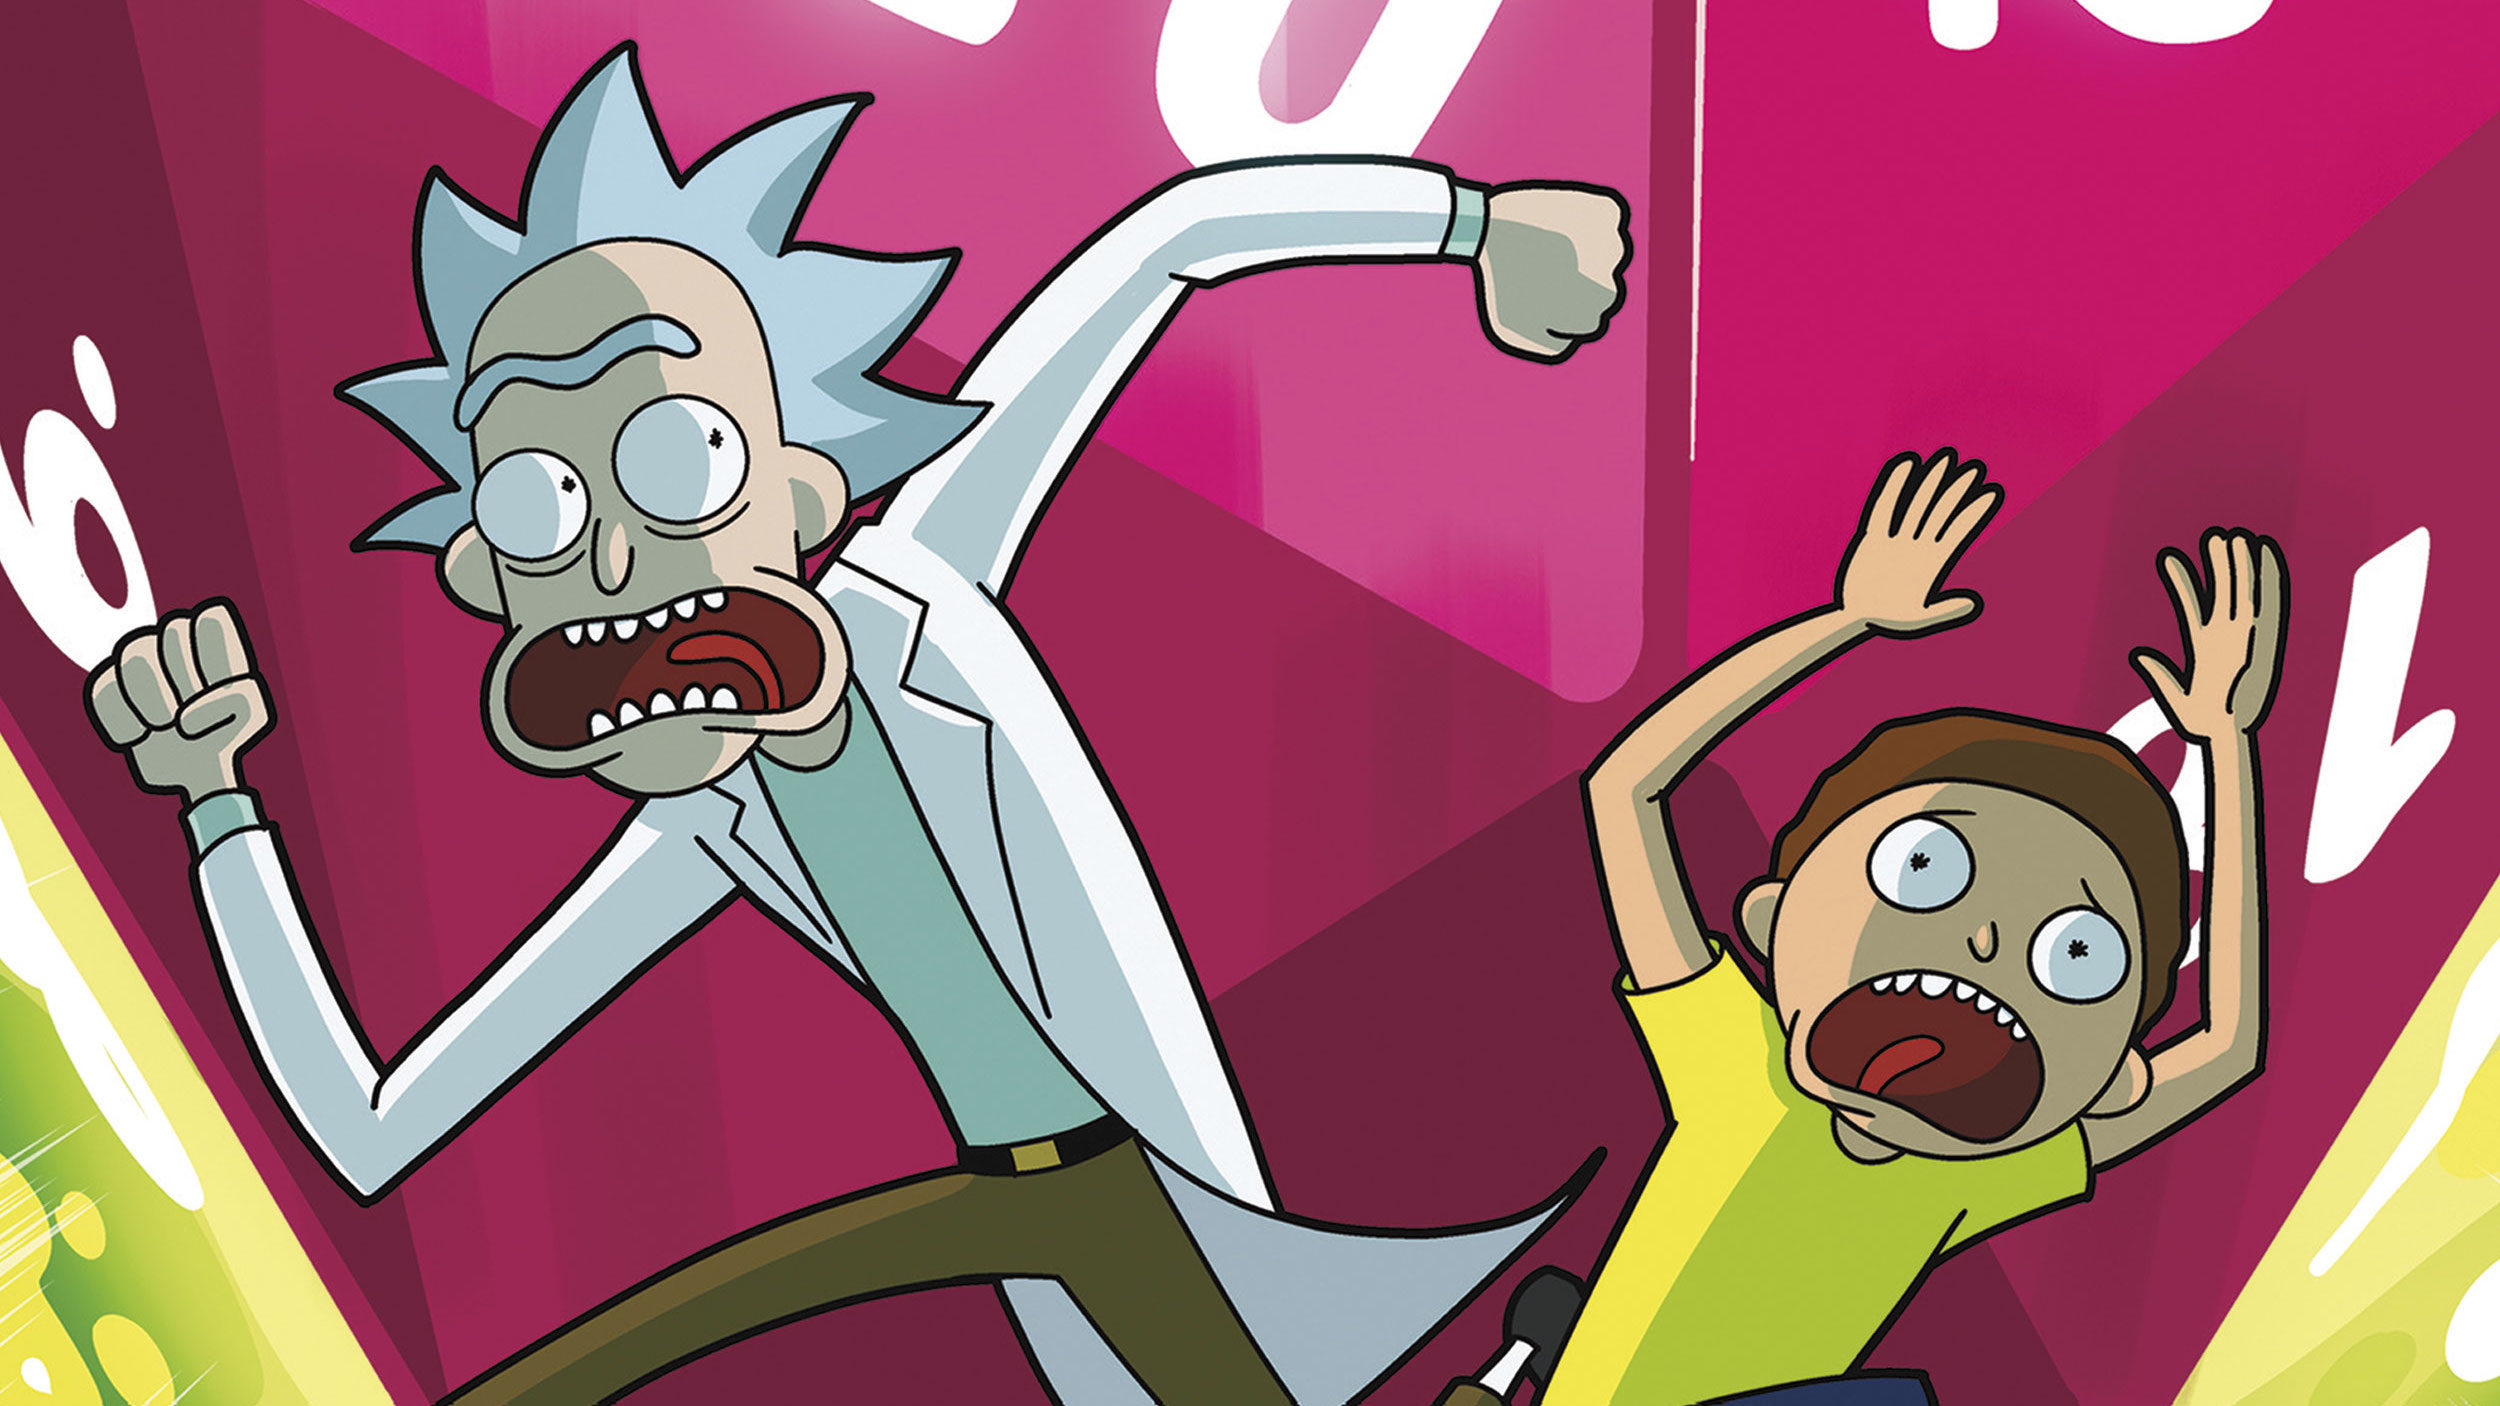 Rick and Morty Season 4 Episode 1 Release Date